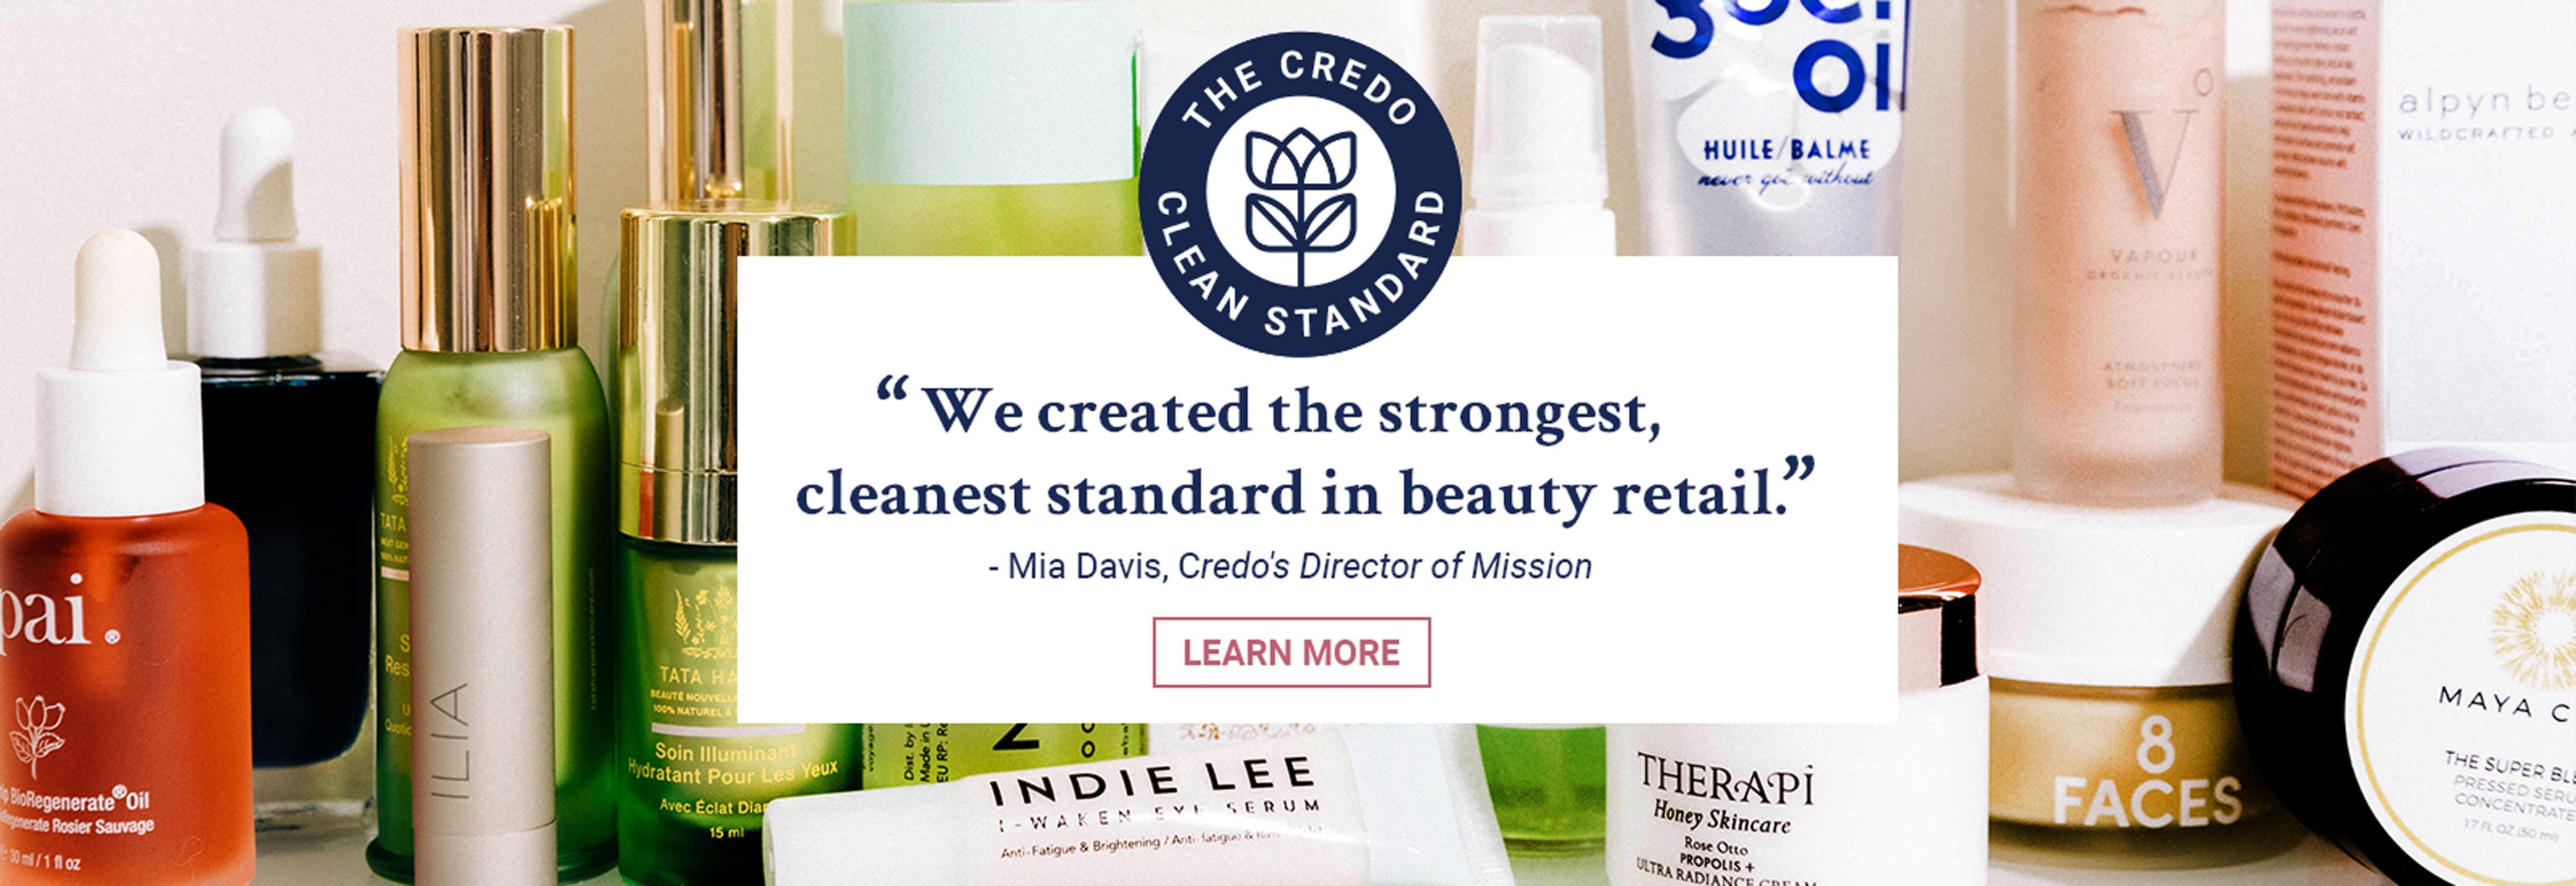 """We created the strongest, cleanest standard in beauty retail."" - Mia Davis, Credo's Director of Mission"